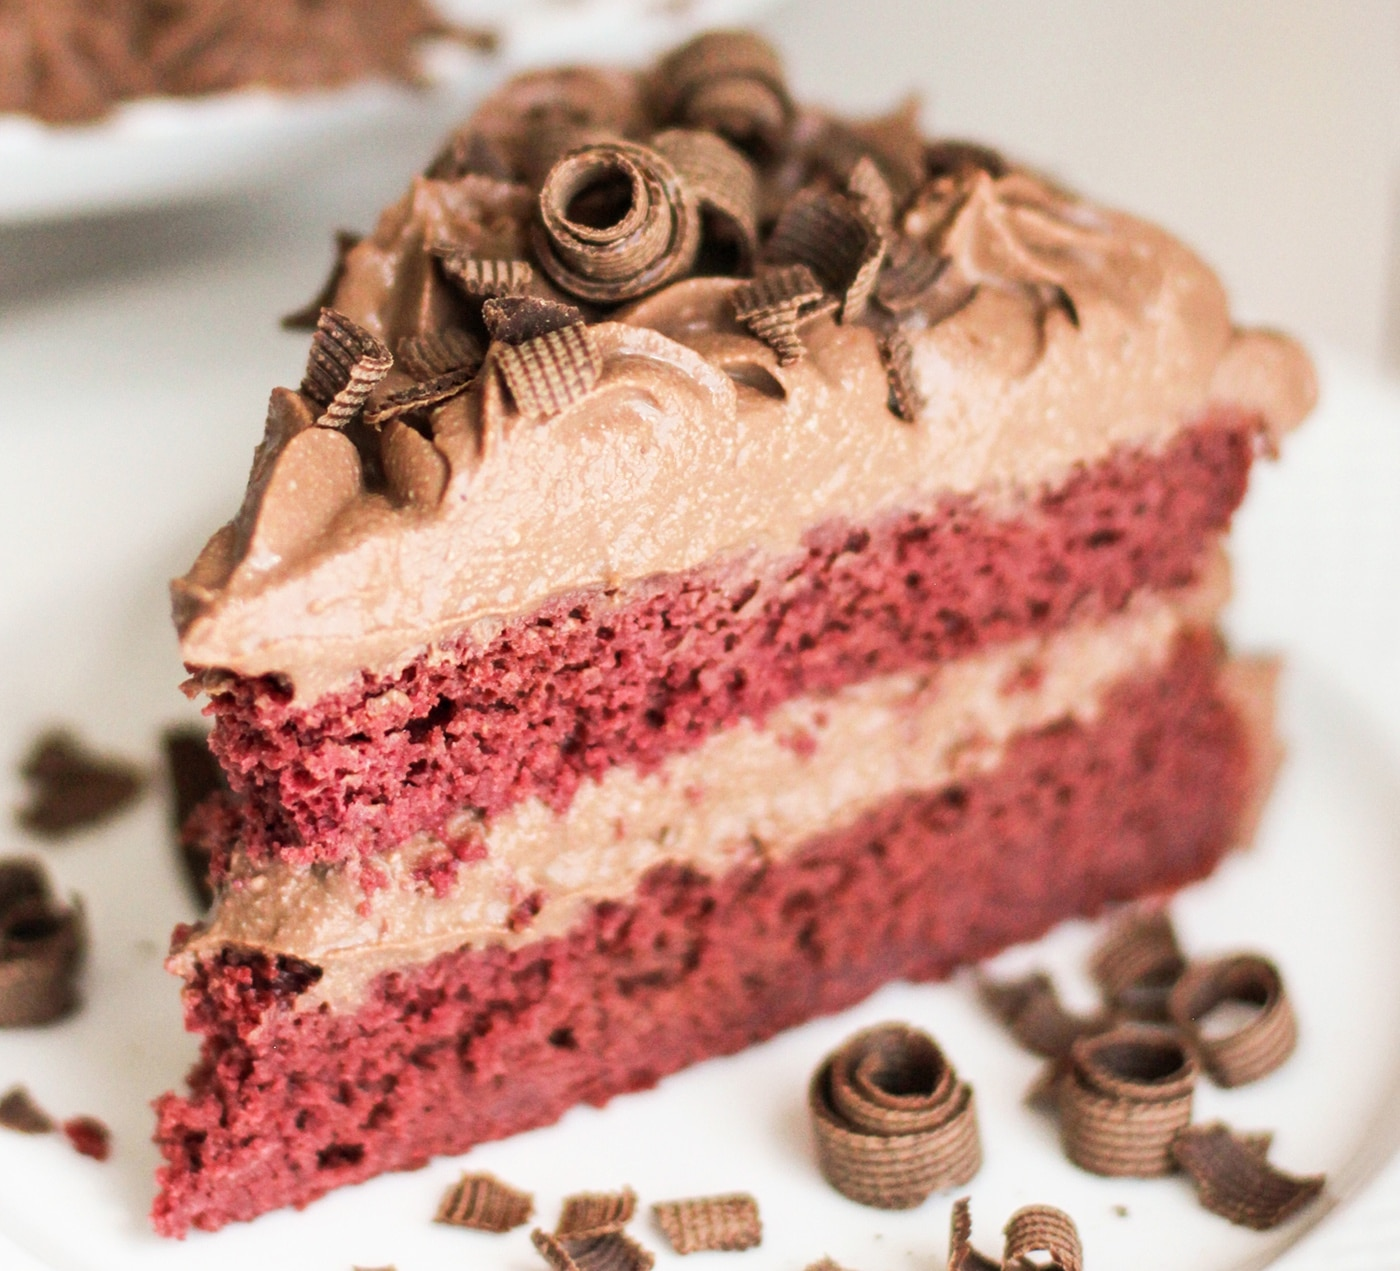 Healthy Vegan Red Velvet Cake with Chocolate Mousse Frosting (all natural, low sugar, high protein, high fiber, gluten free, dairy free) - Healthy Dessert Recipes at Desserts with Benefits